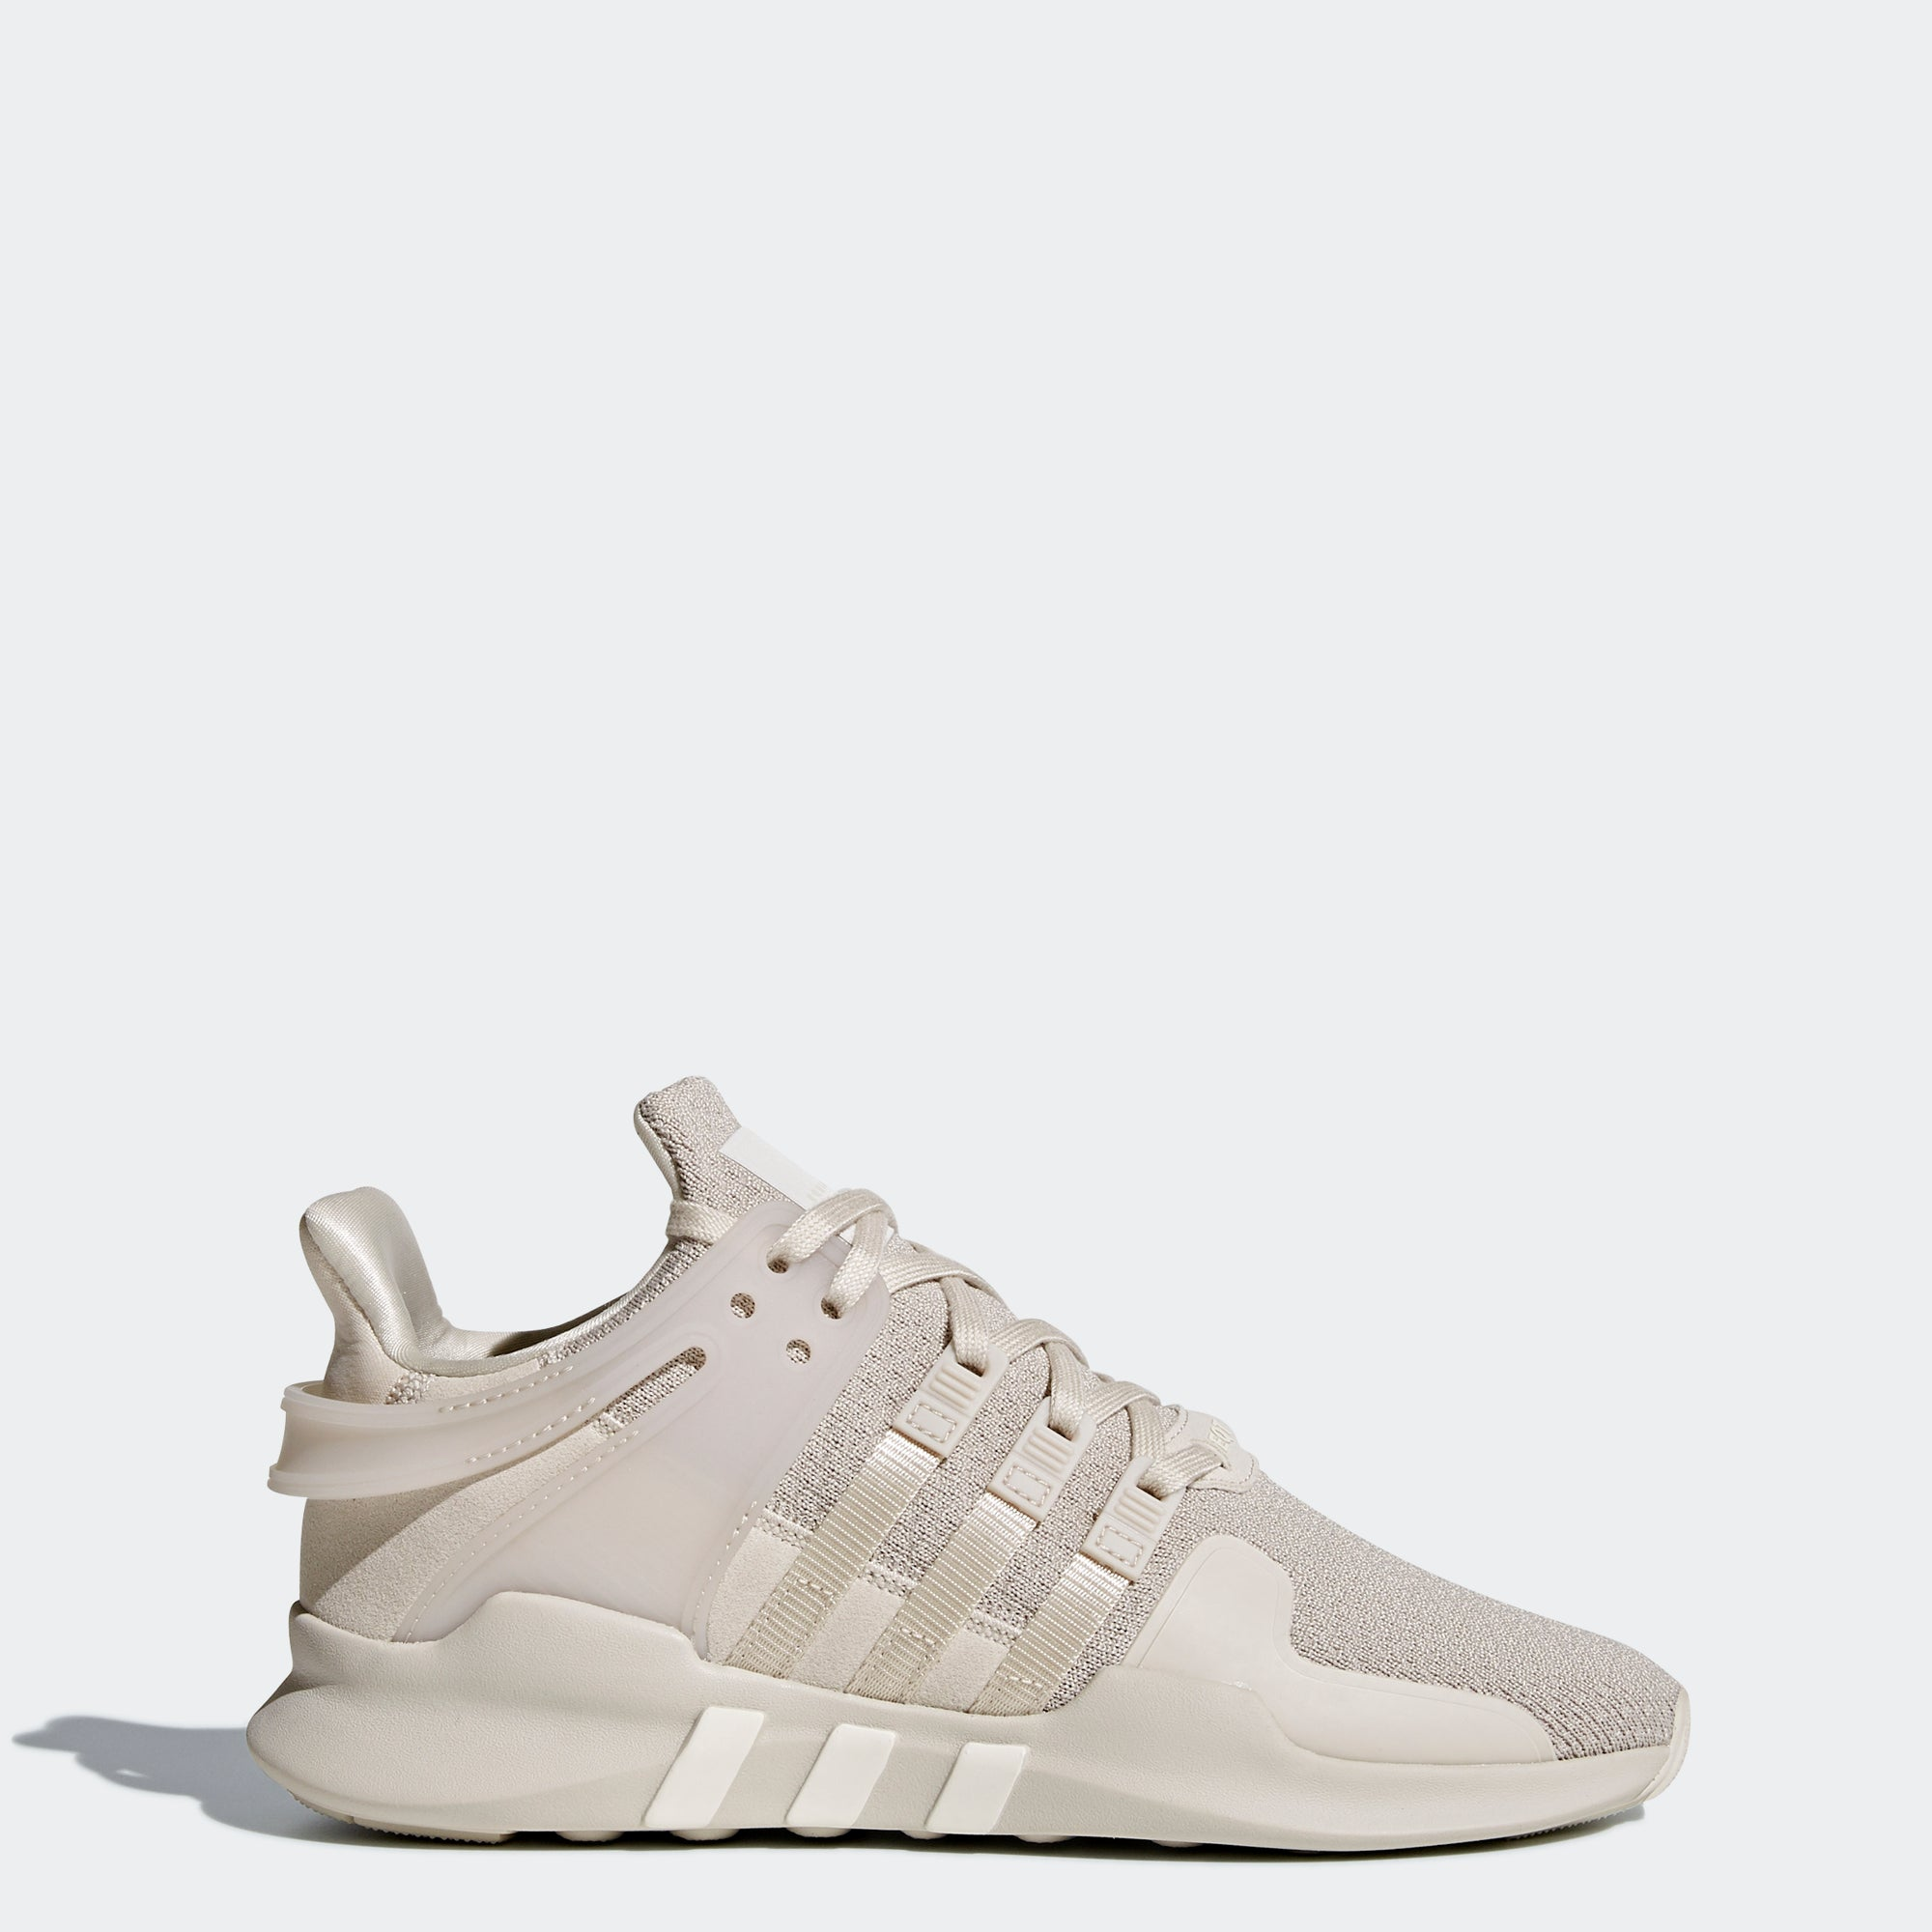 brand new 16e68 48bf1 adidas EQT Support ADV Shoes Clear Brown B37543 | Chicago ...